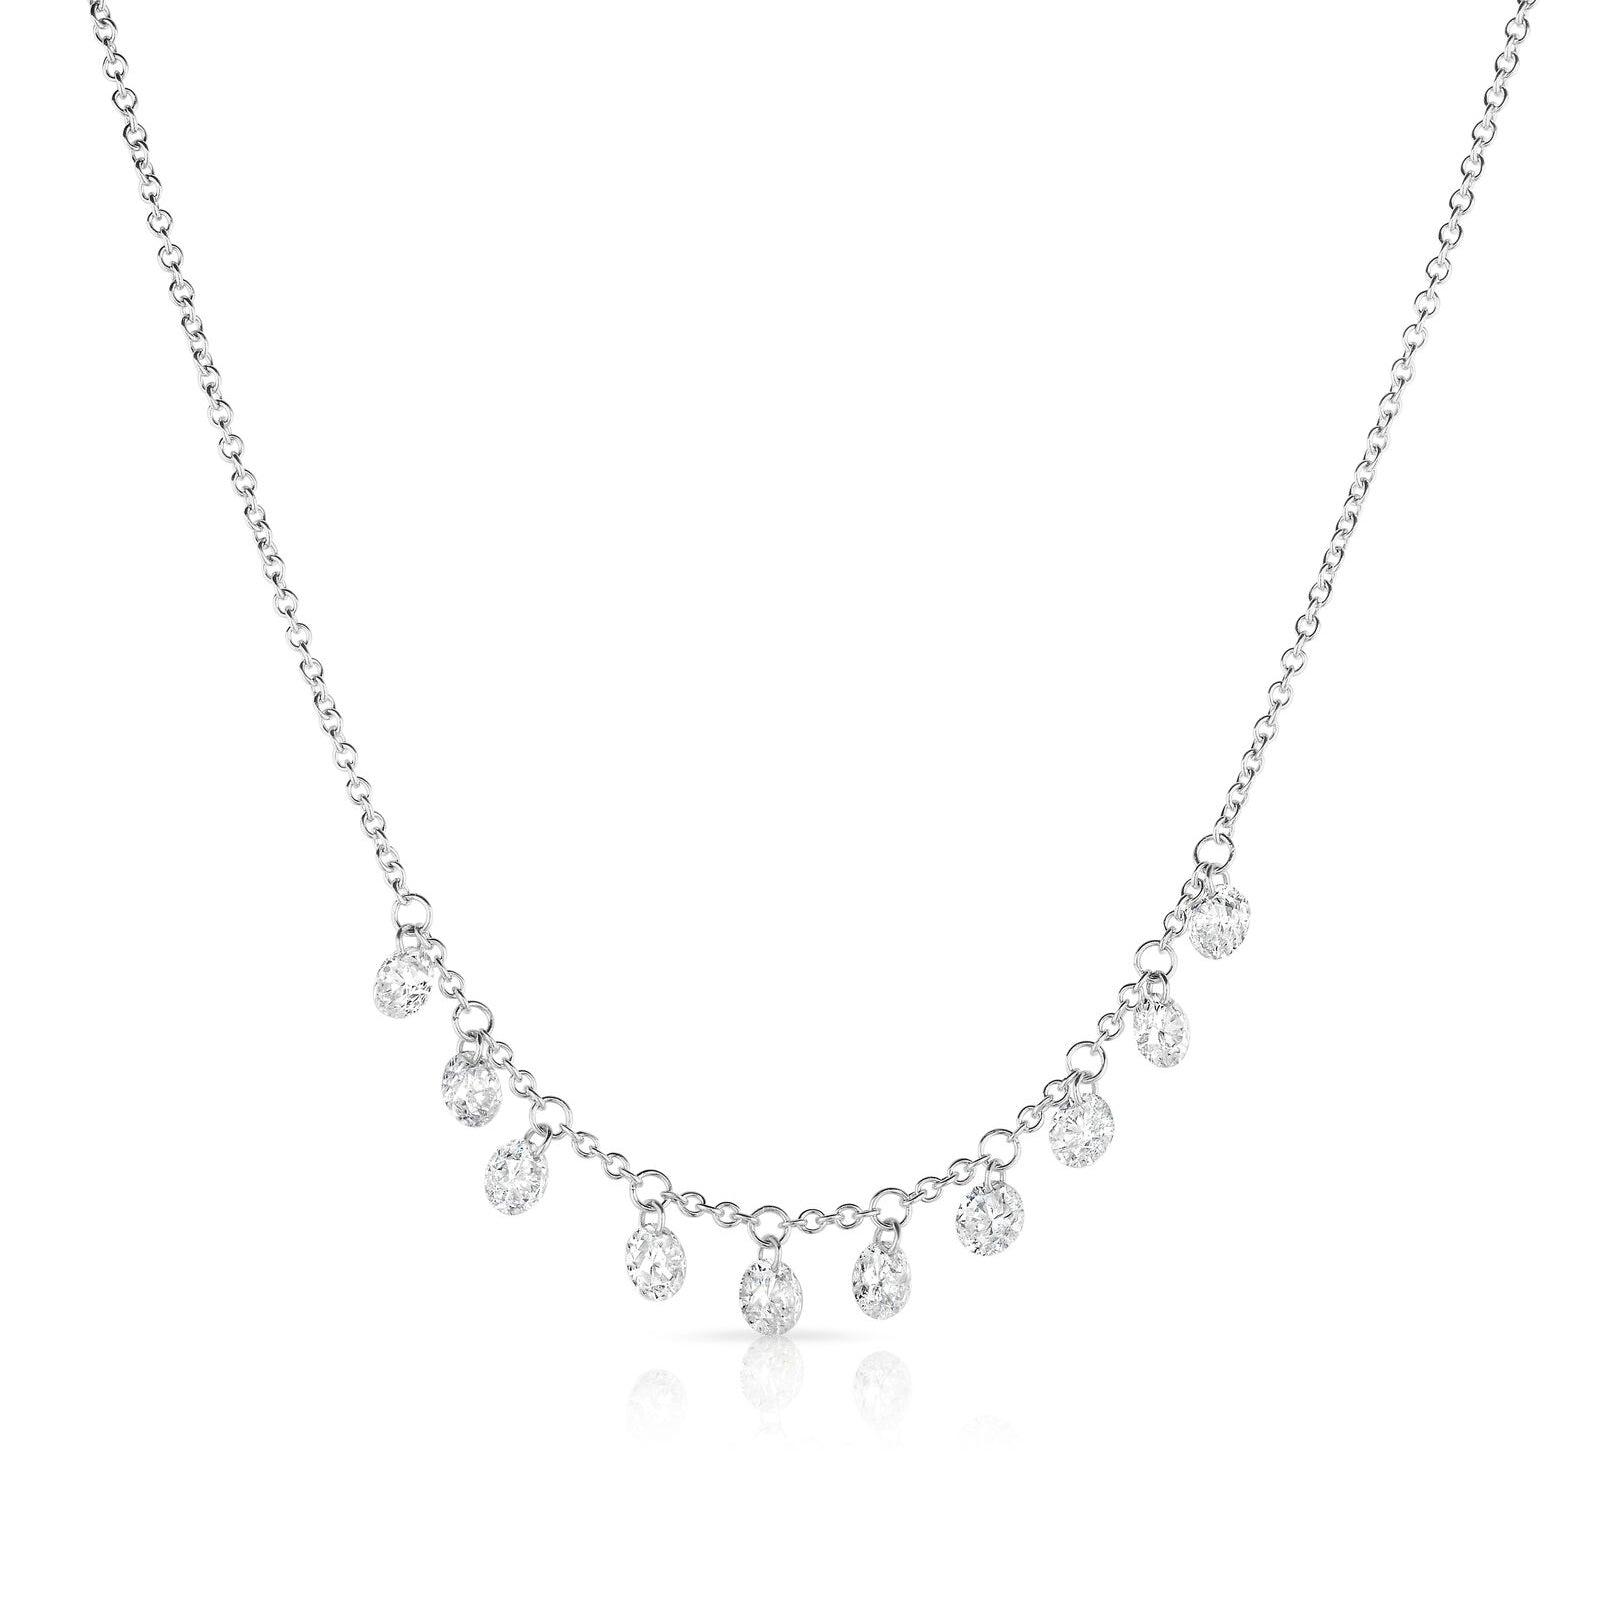 Ten Floating Diamonds Necklace, 1.50 Carats, 14K White Gold